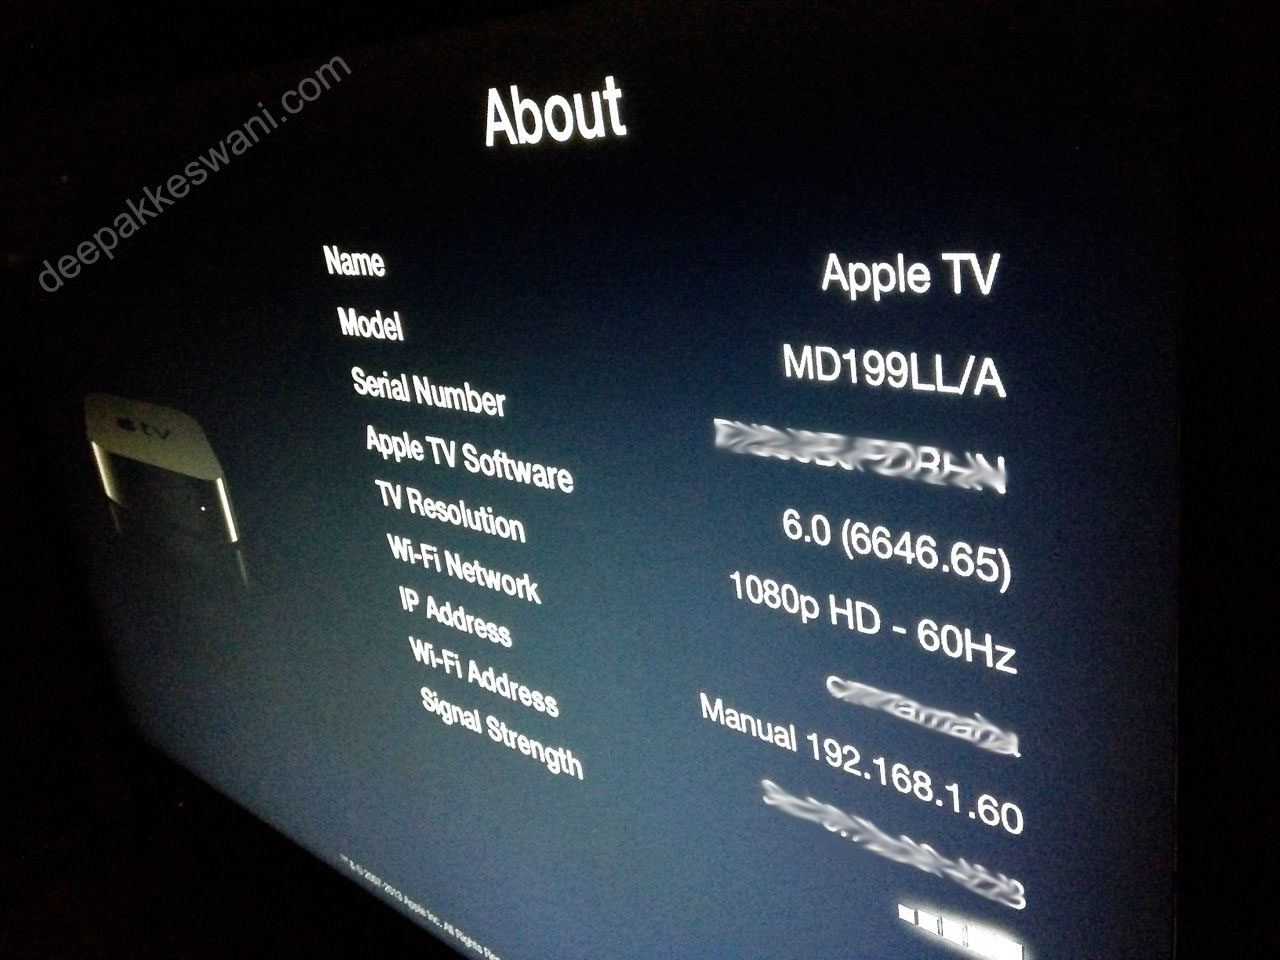 Apple TV version 6 about page